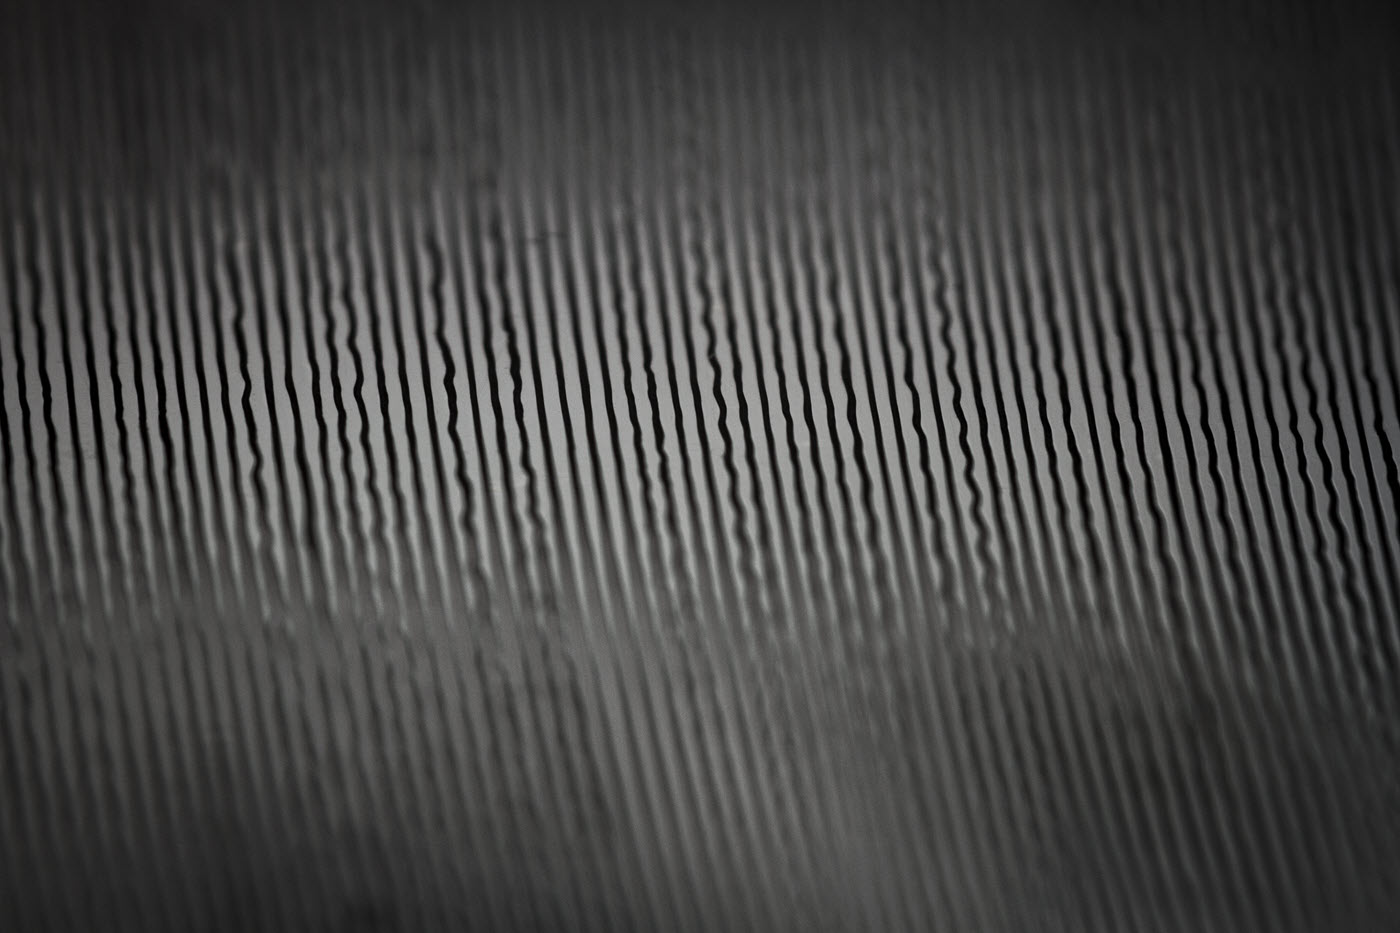 Closeup of the grooves on the aluminum disc.